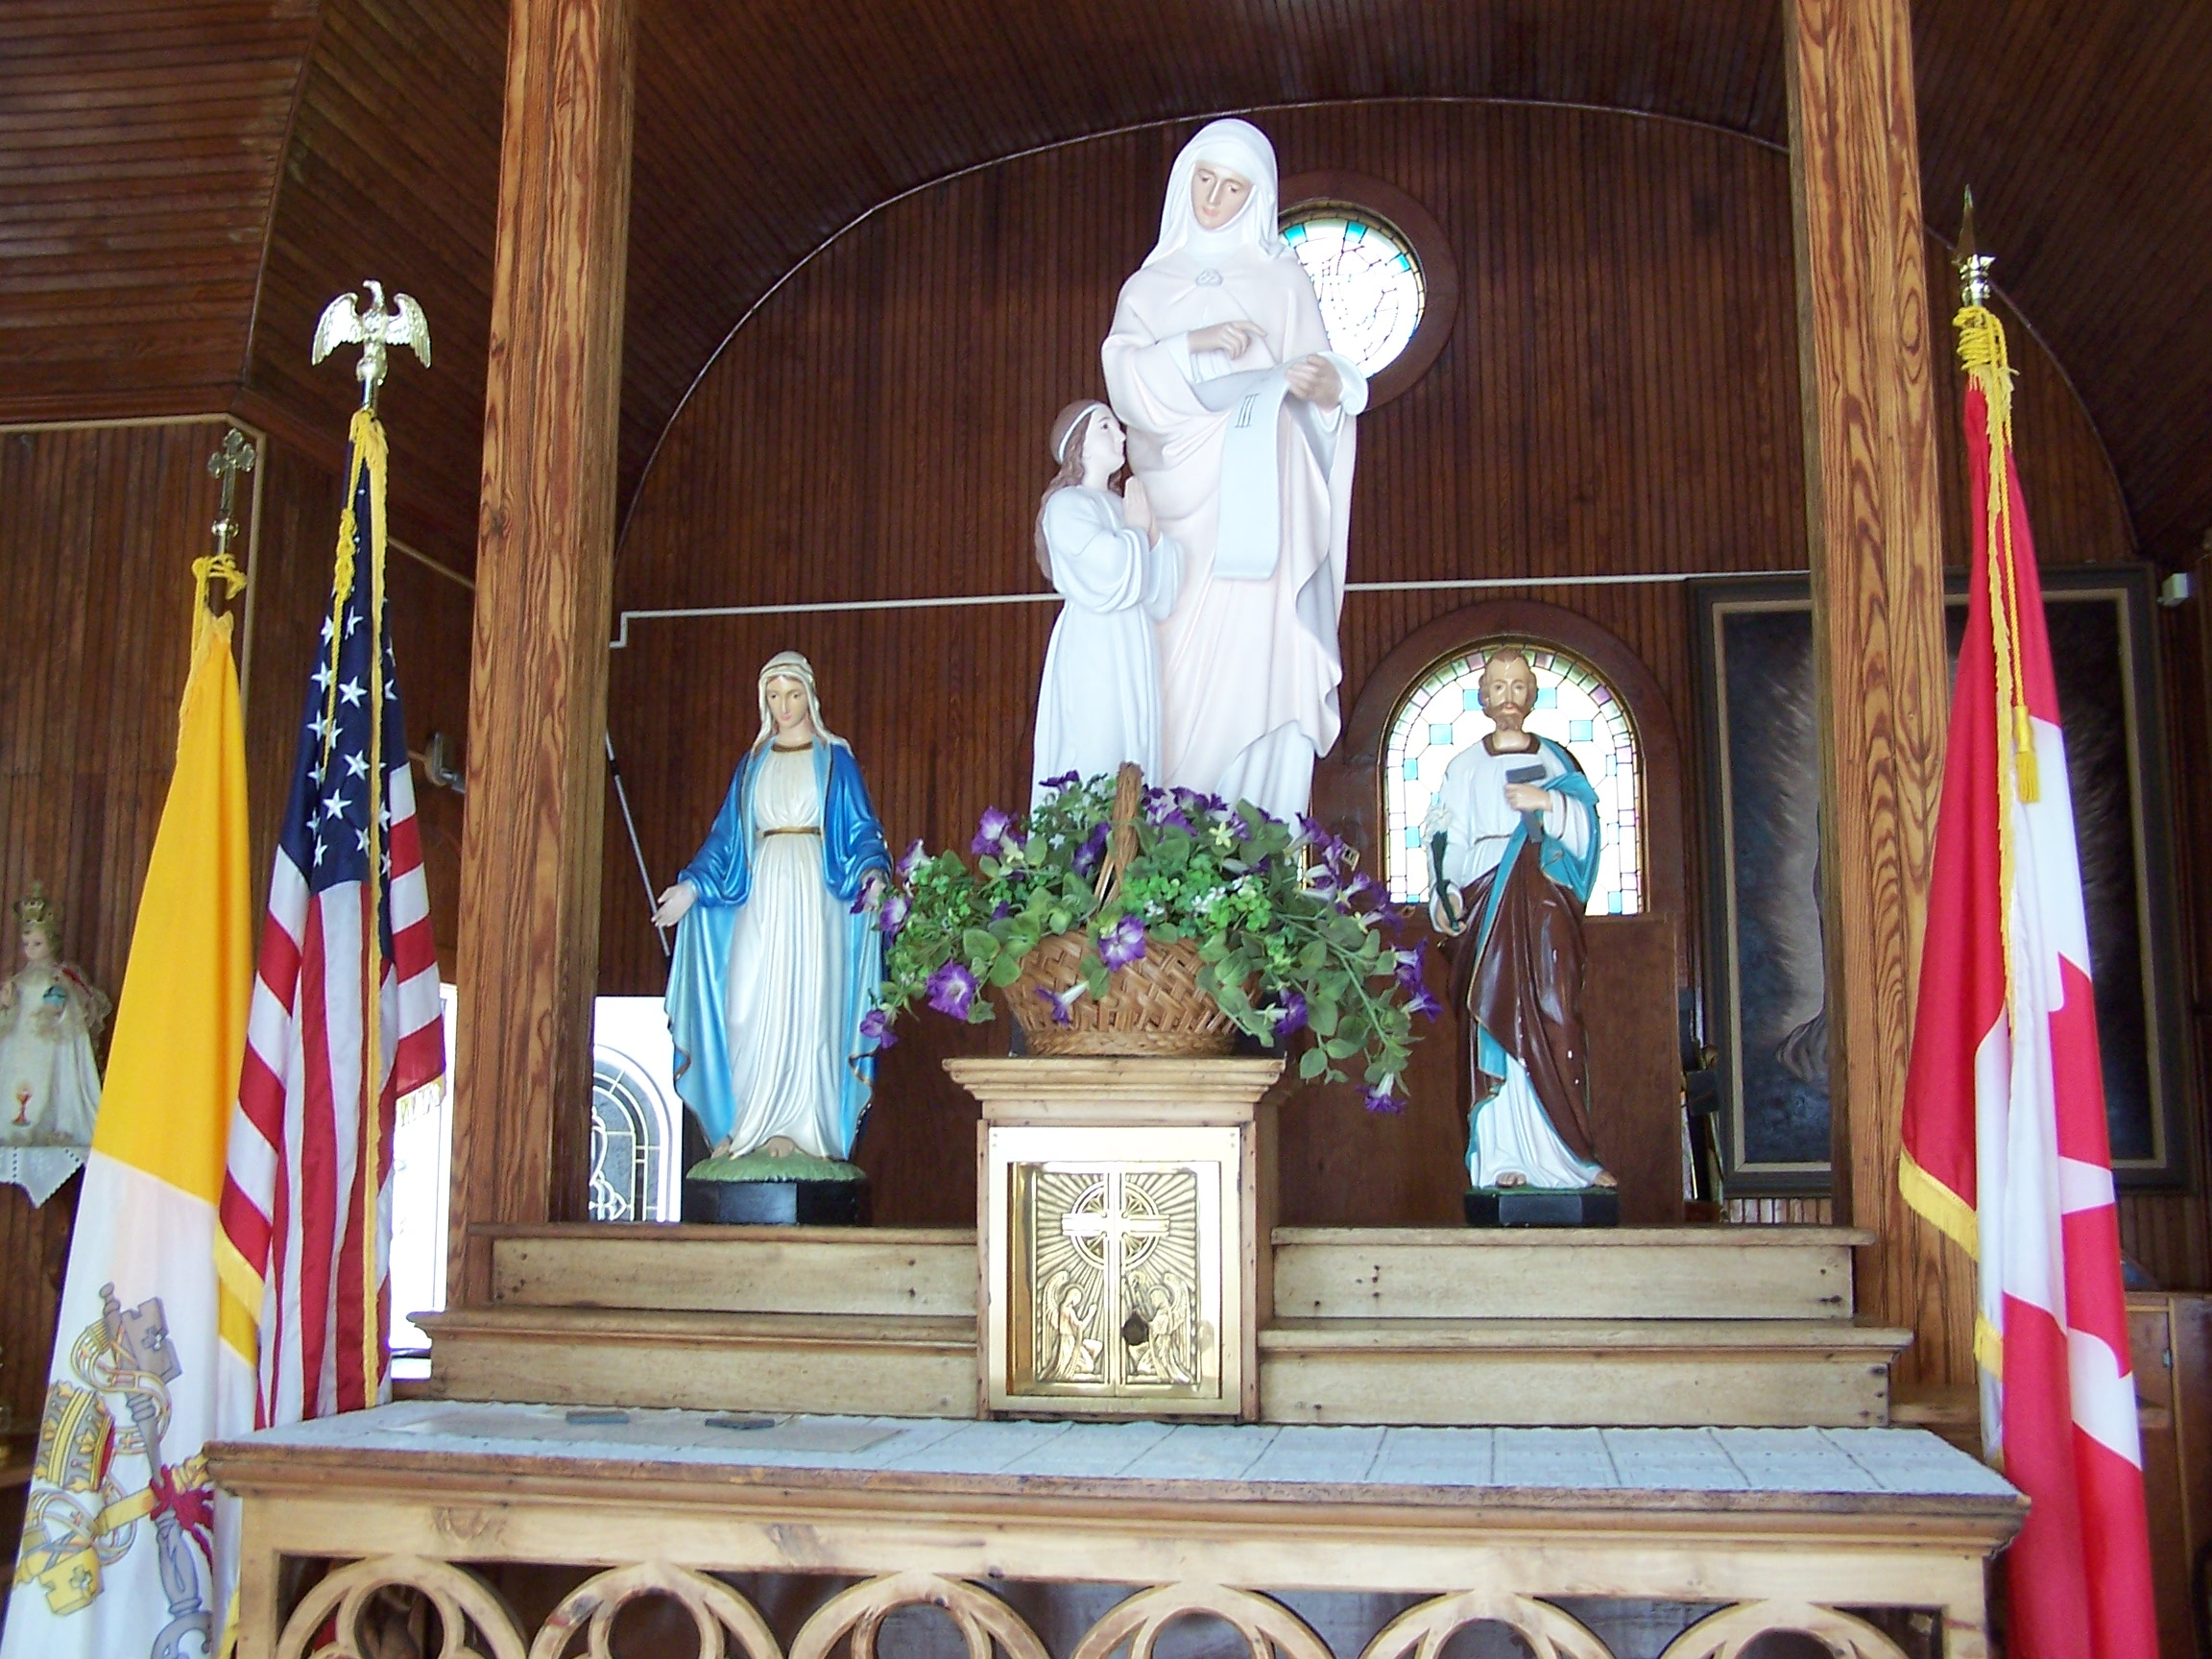 Saint Anne's Shrine is located on Isle LaMotte, a quiet island on Lake Champlain in Vermont. It was developed by the Society of Saint Edmund and has been maintained by them for 100 years..